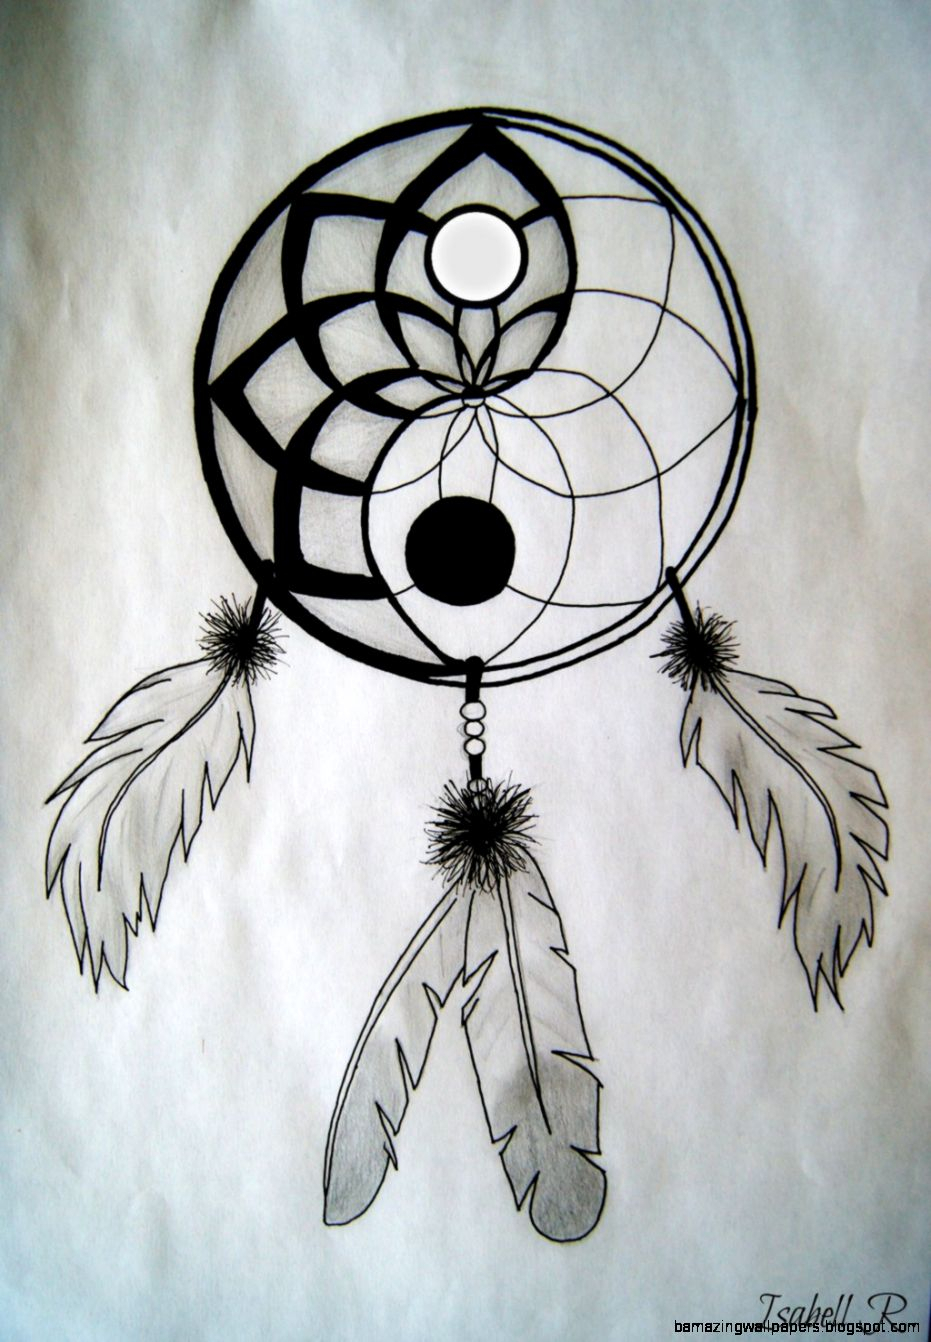 Easy Dreamcatcher Drawing At Getdrawings Com Free For Personal Use